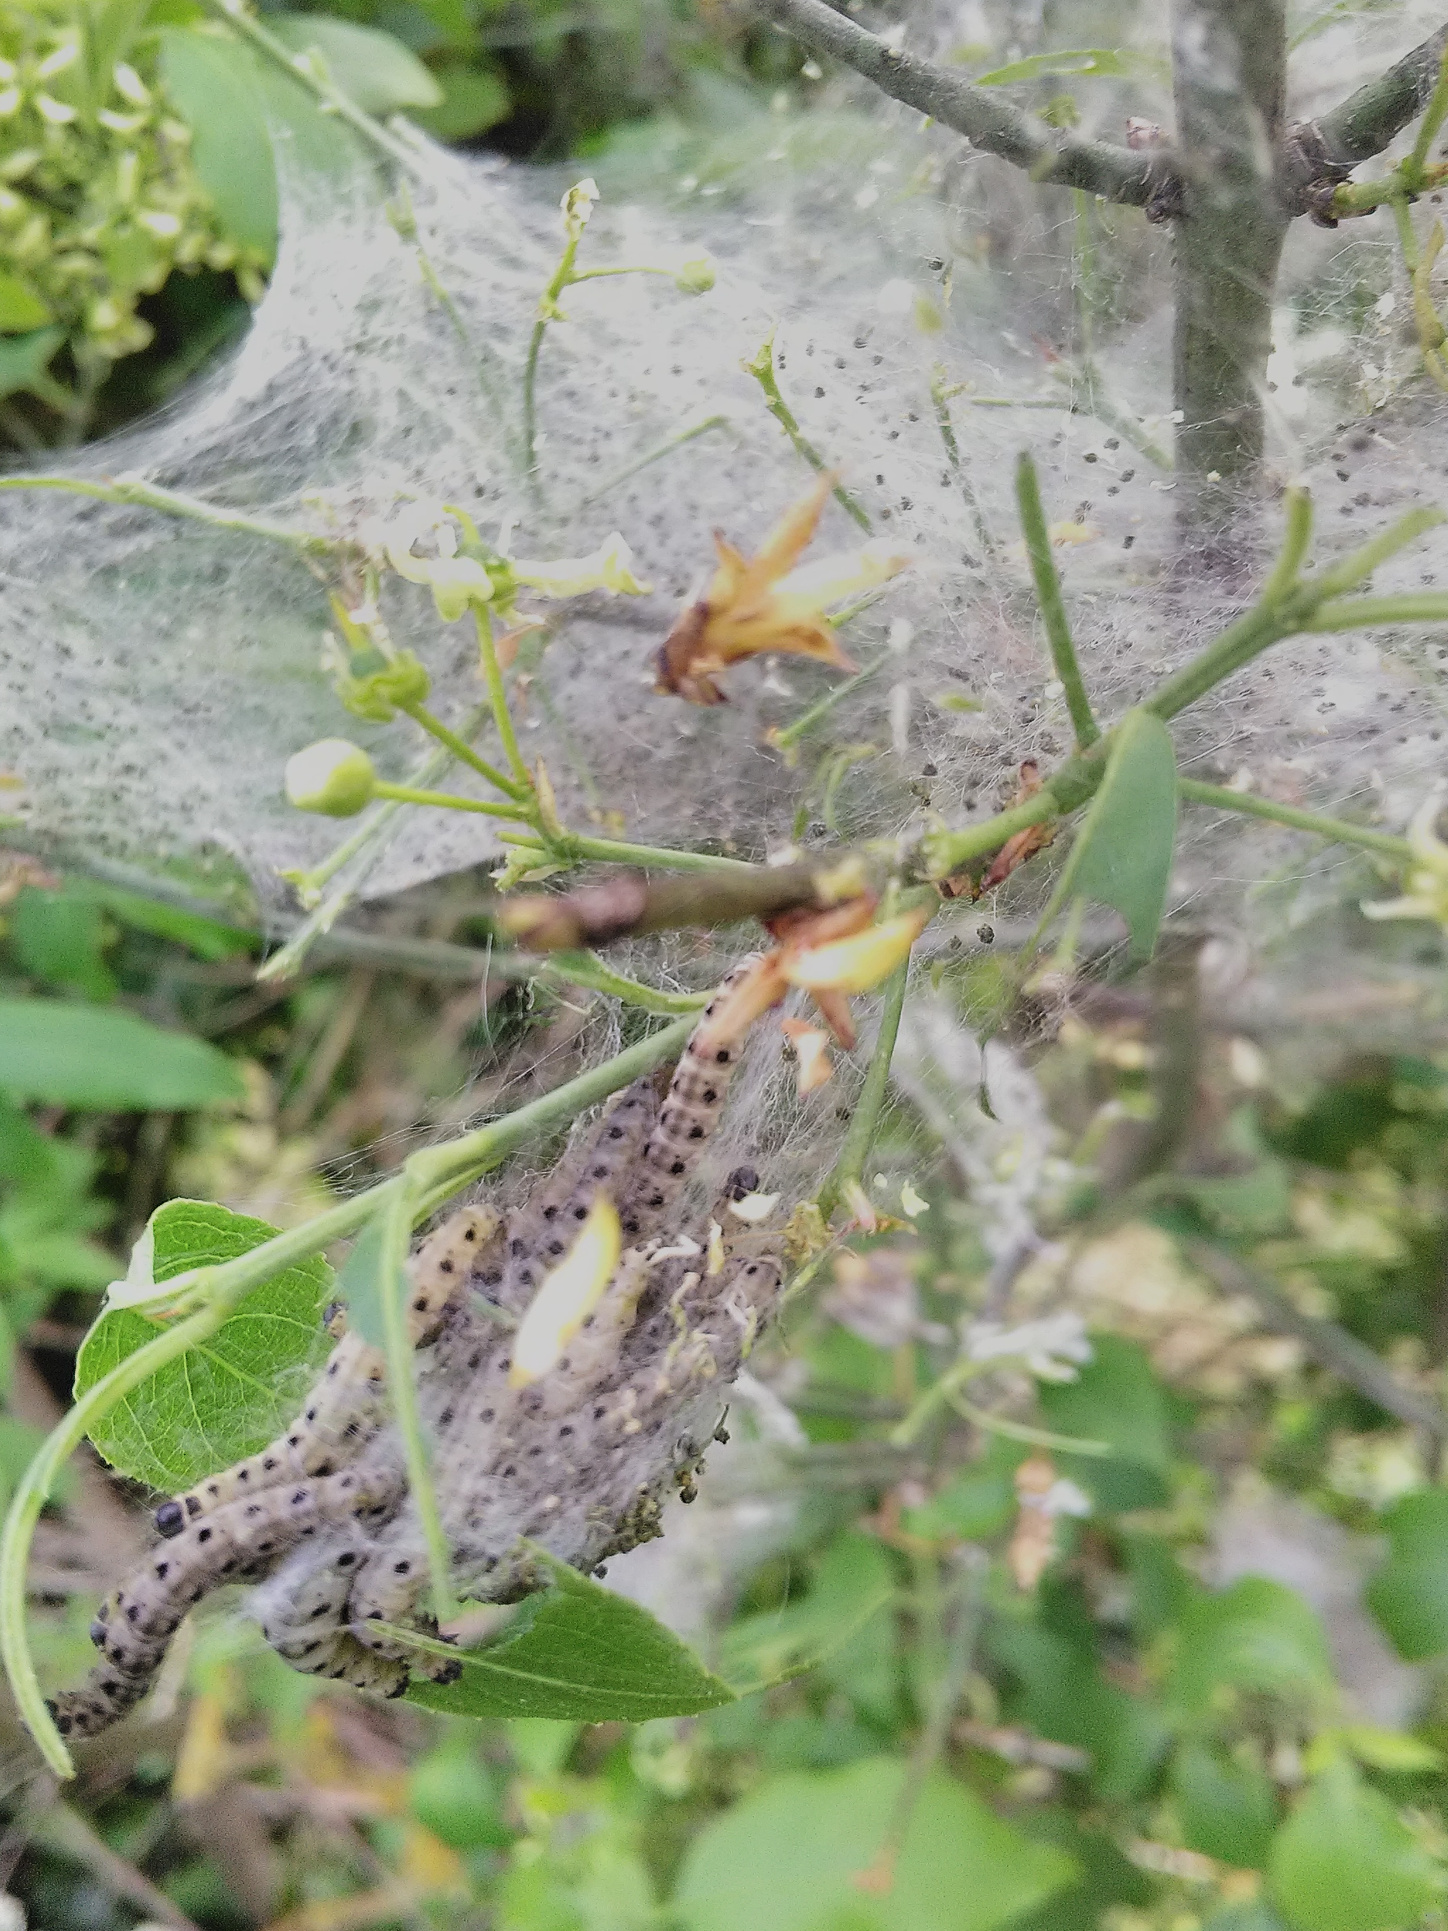 Picture of Ermin Moth caterpillars